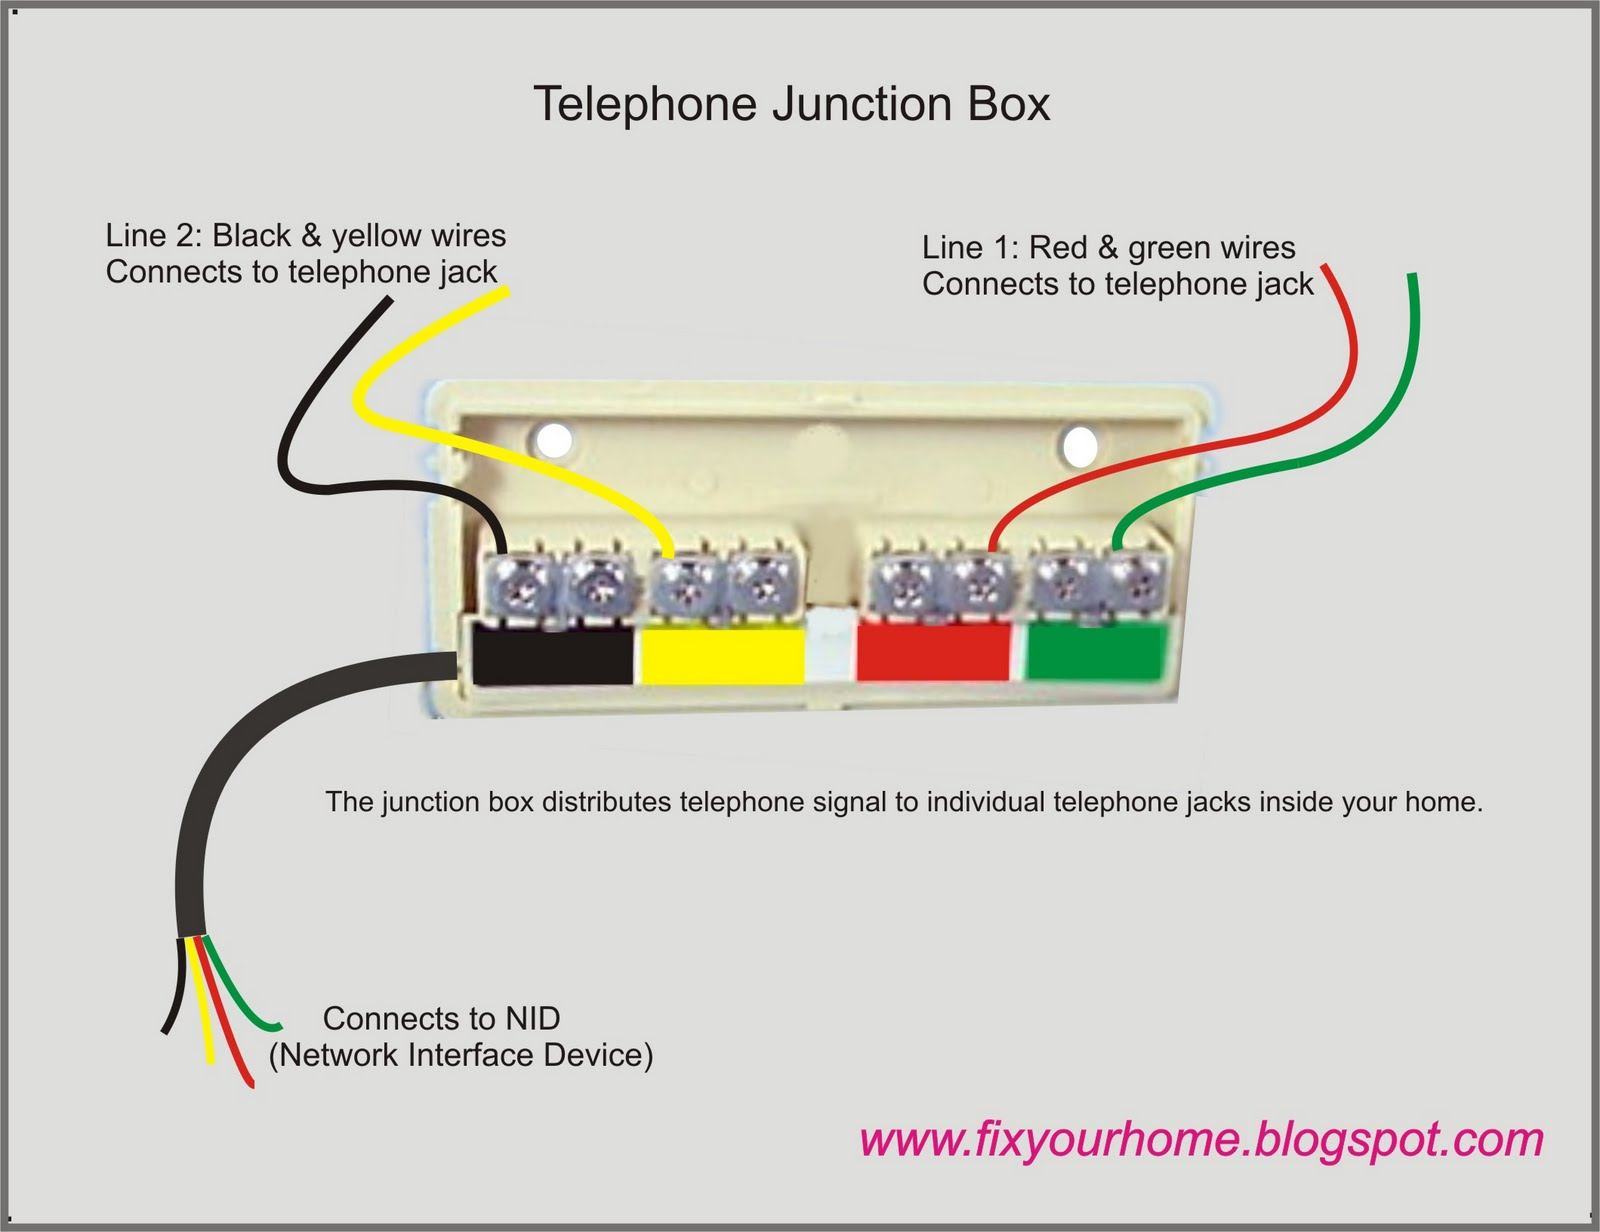 phone box wire diagram wiring diagram blogs phone interface box phone box wire diagram wiring diagram [ 1600 x 1232 Pixel ]